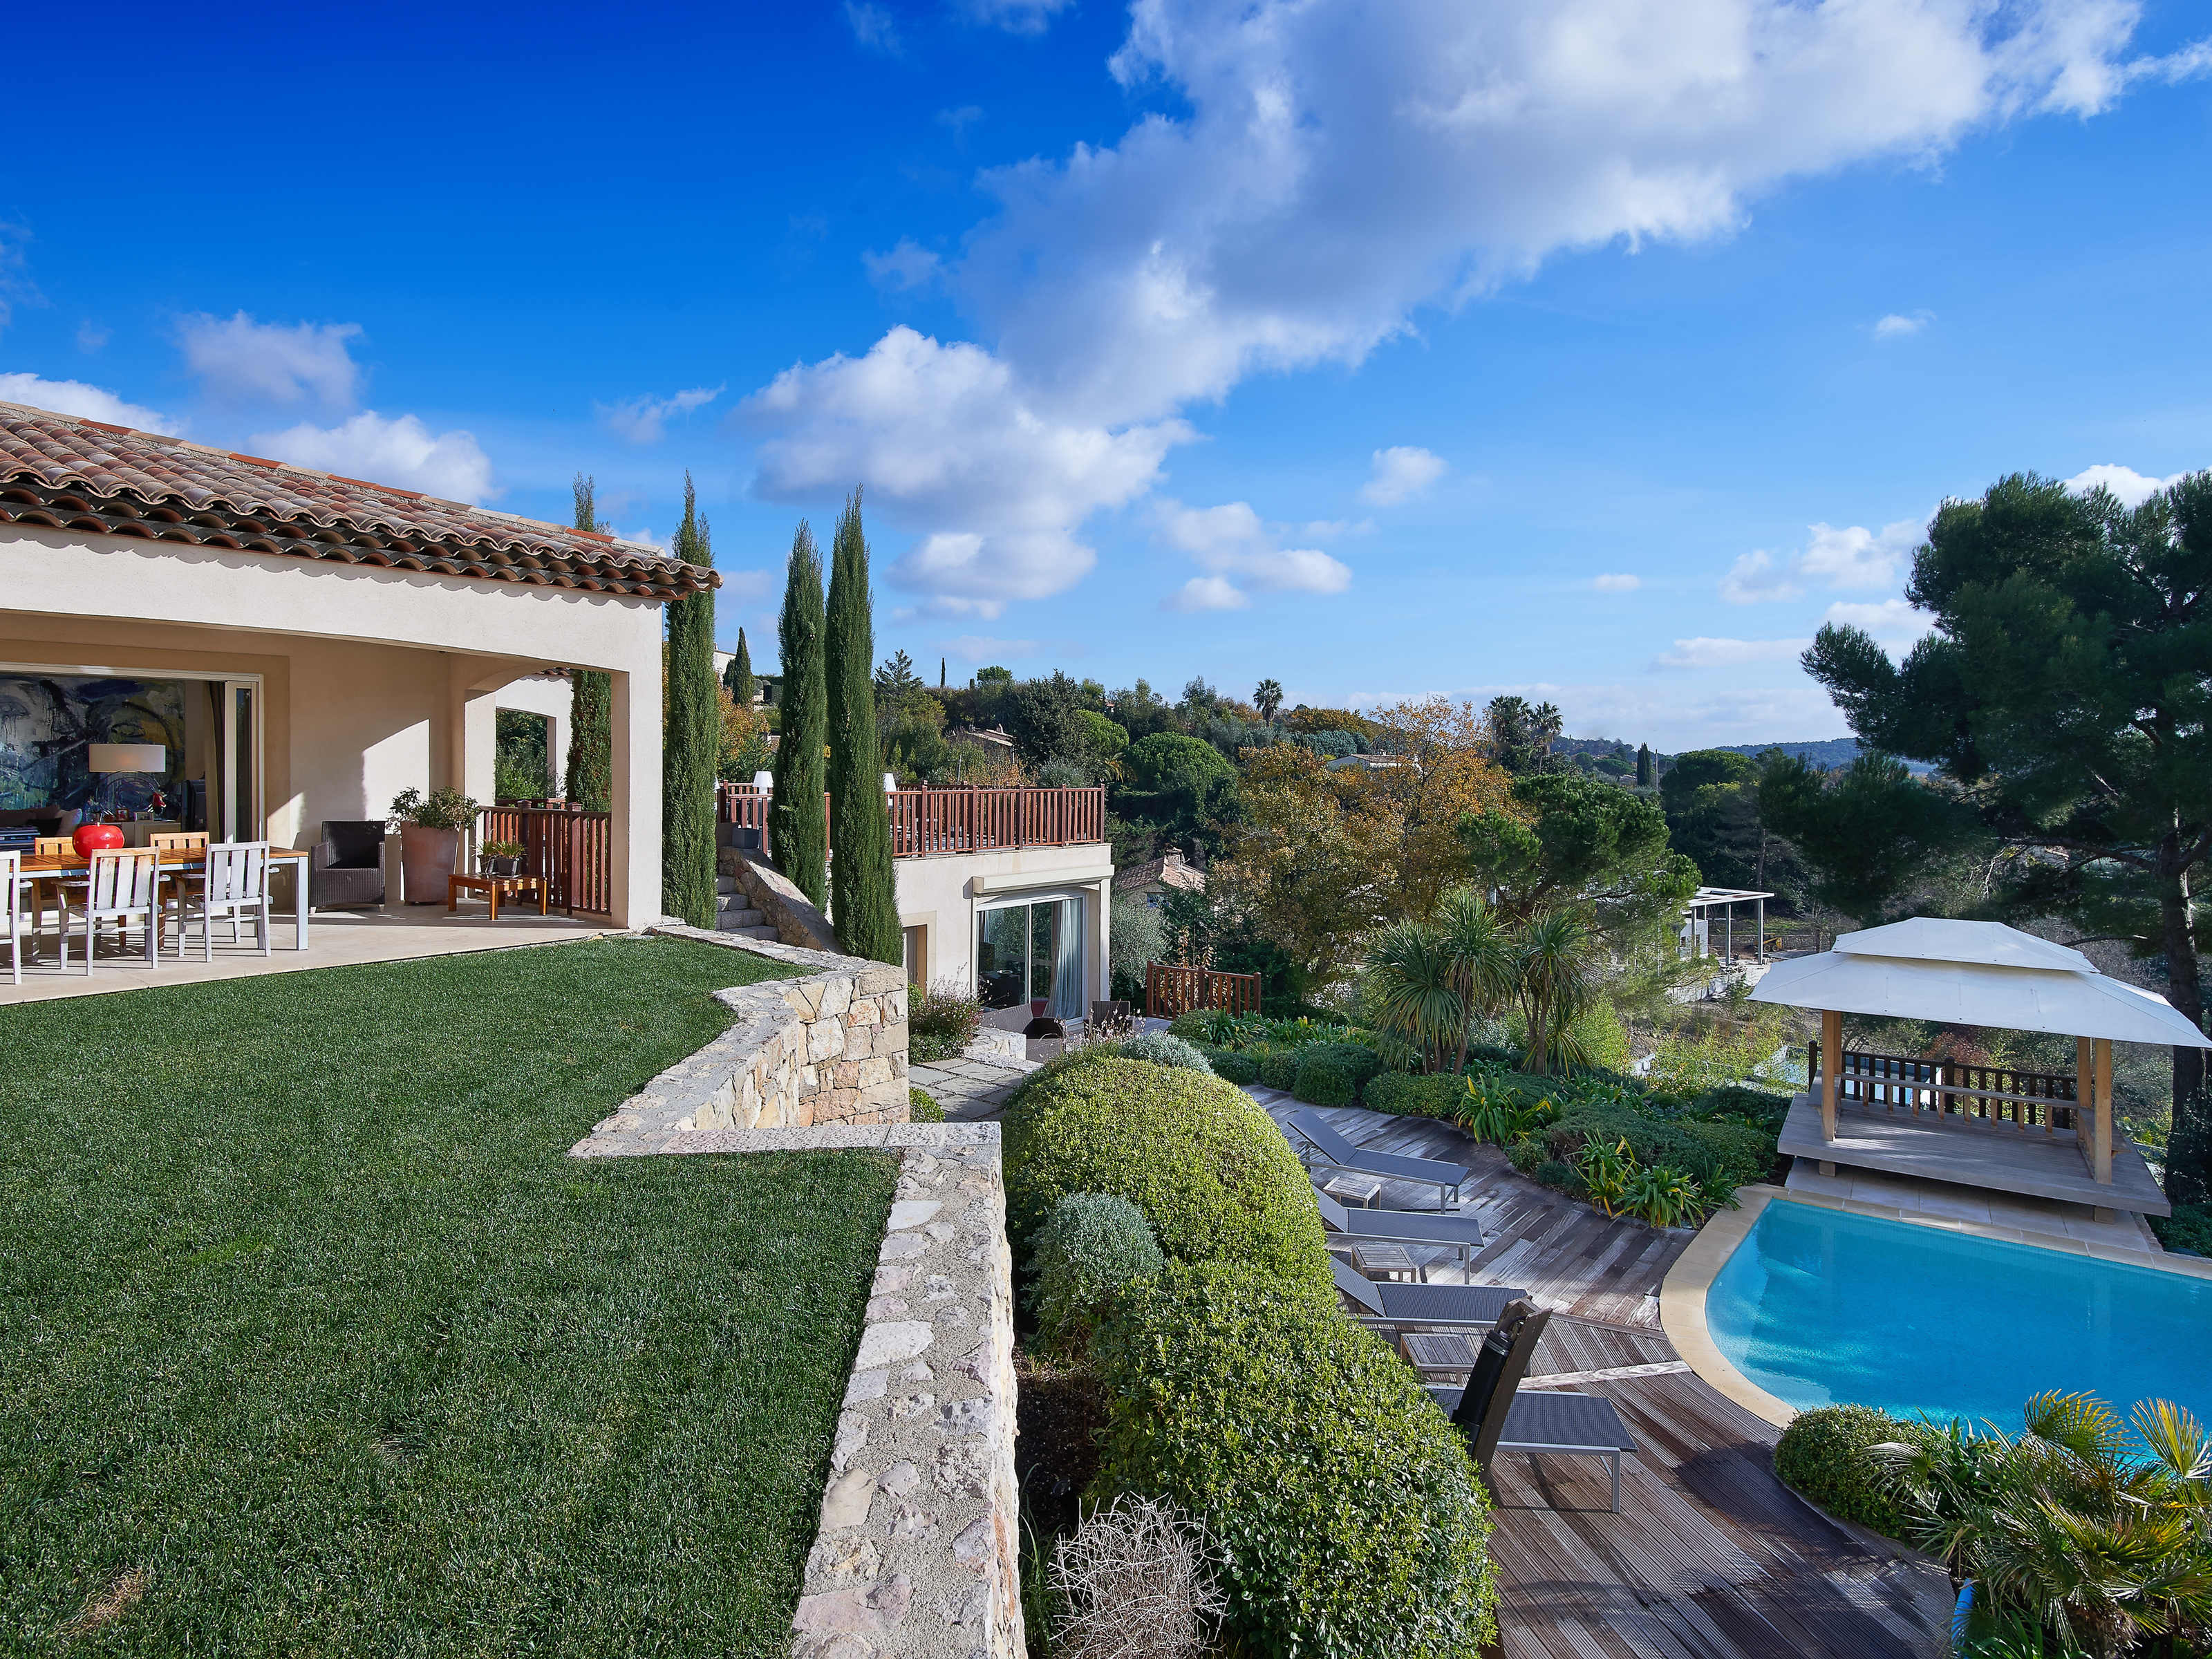 Single Family Home for Sale at Brand new modern villa with views over the village Mougins Mougins, Provence-Alpes-Cote D'Azur 06250 France